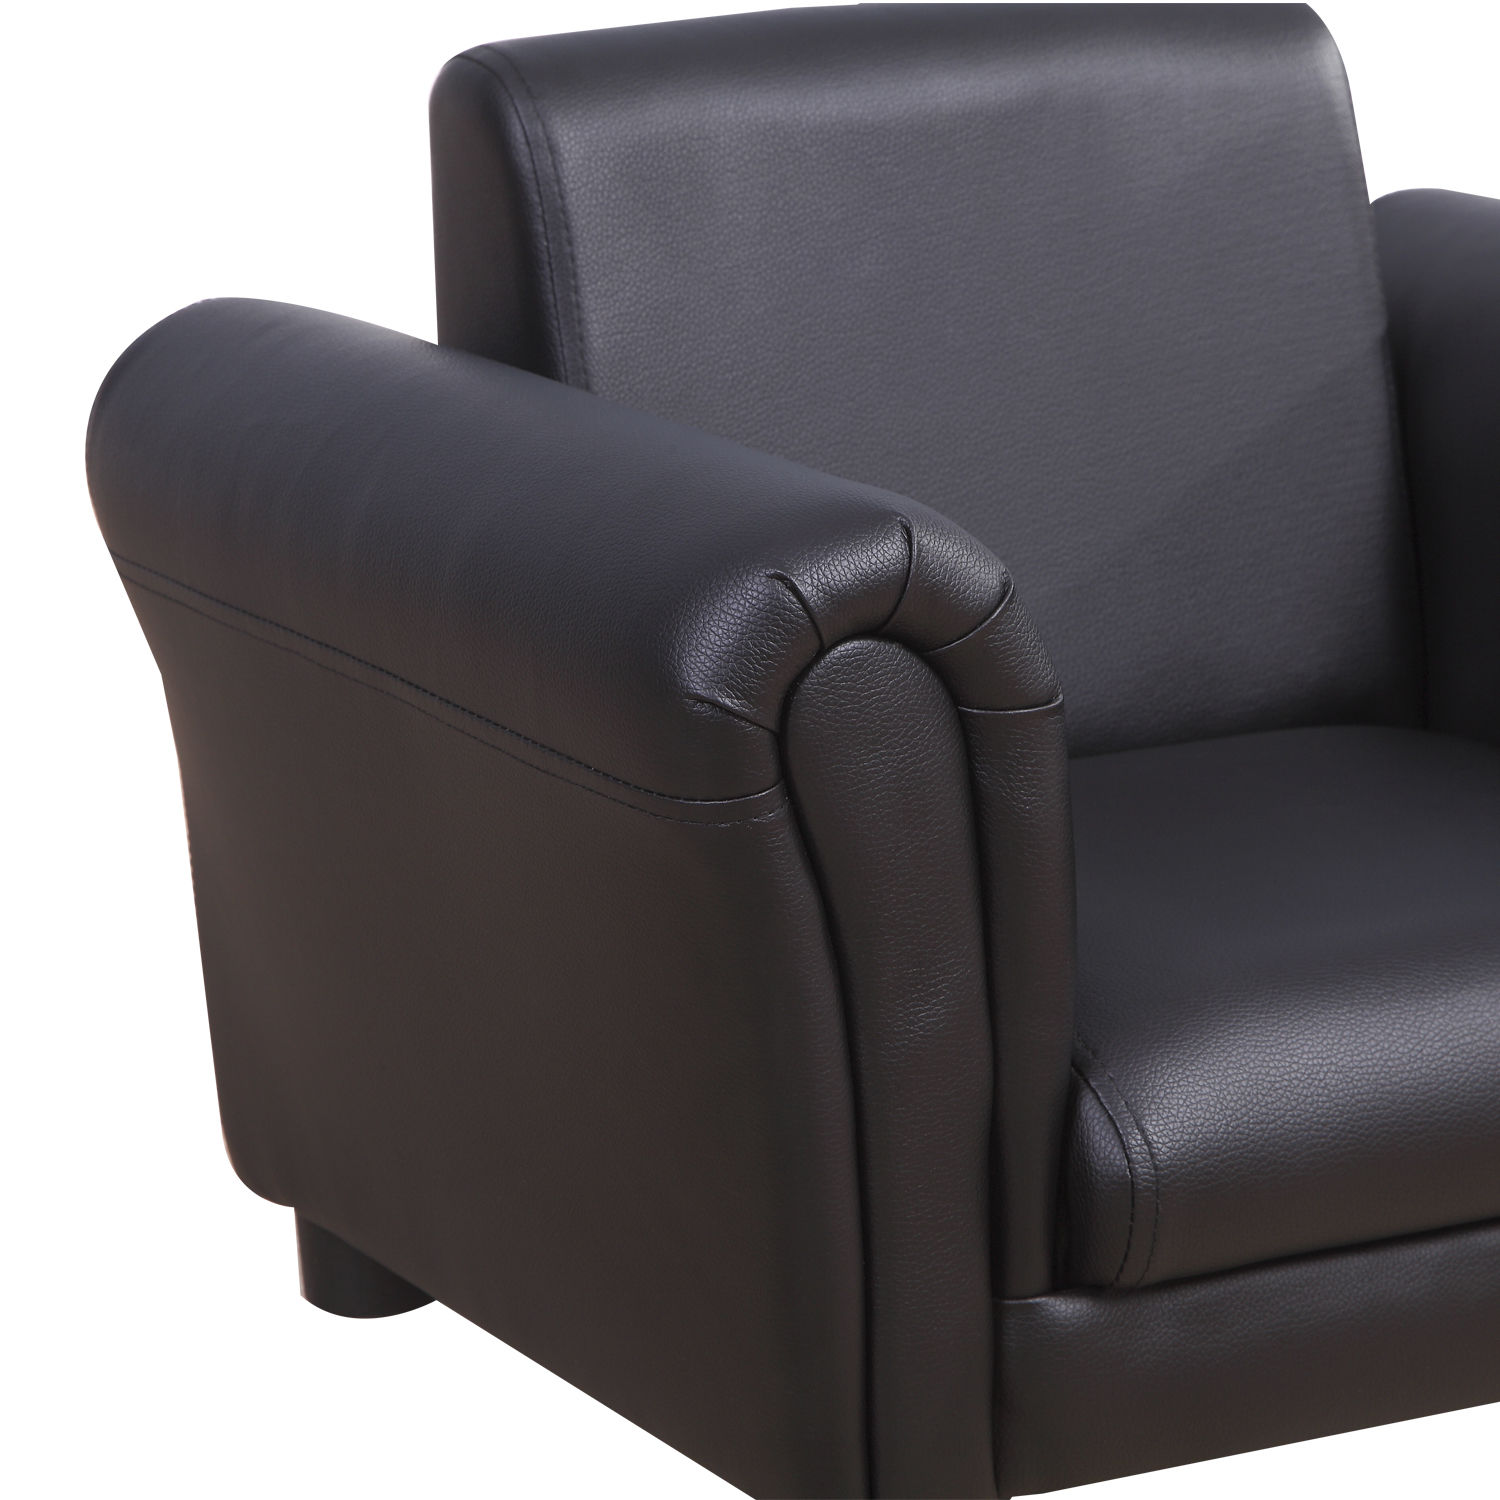 Kids-Sofa-Children-Chair-Seat-Armchair-W-Footstool-Playroom-Bedroom-Black-Pink thumbnail 10